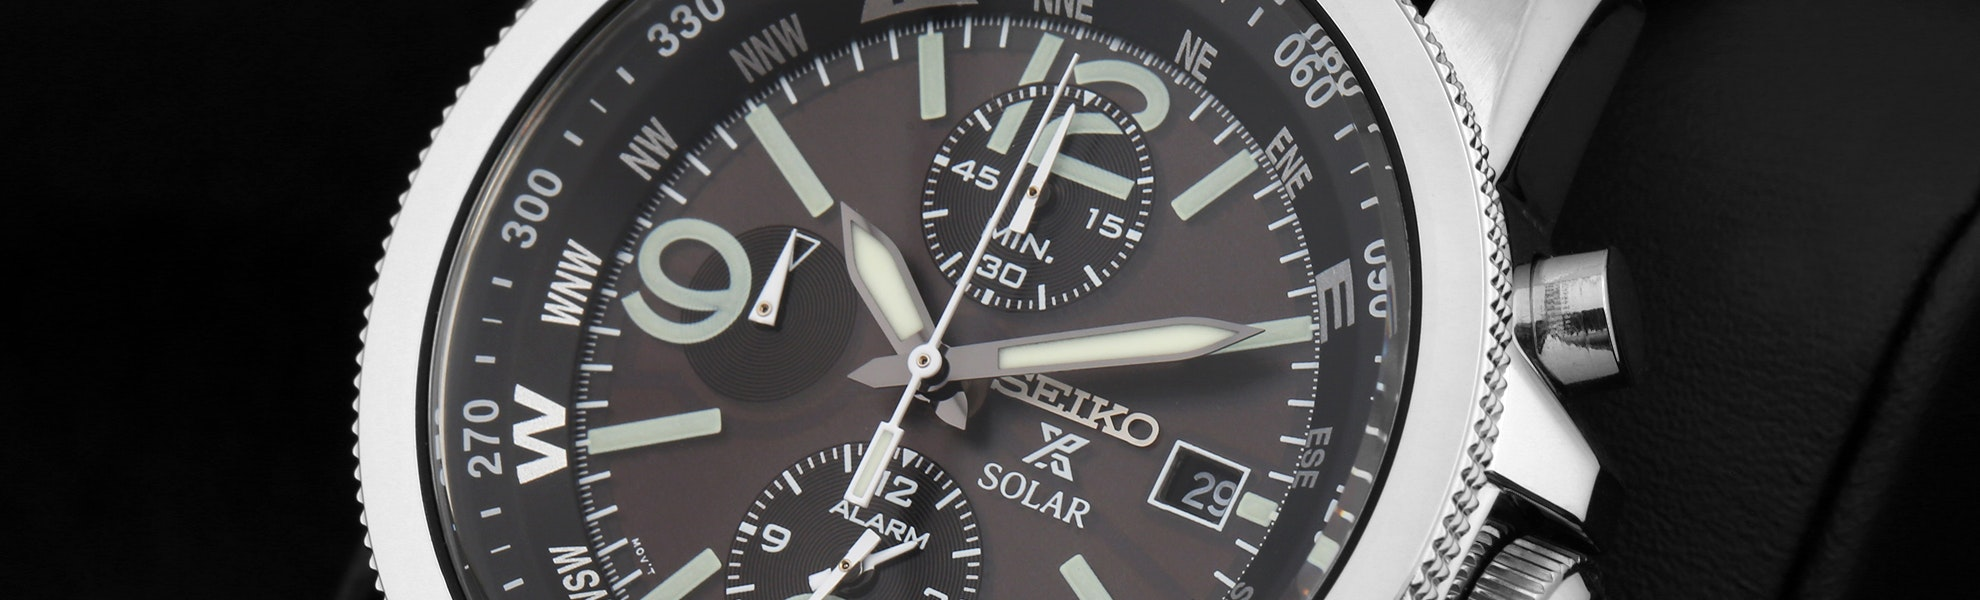 Seiko Prospex SSC Solar Flight Watch